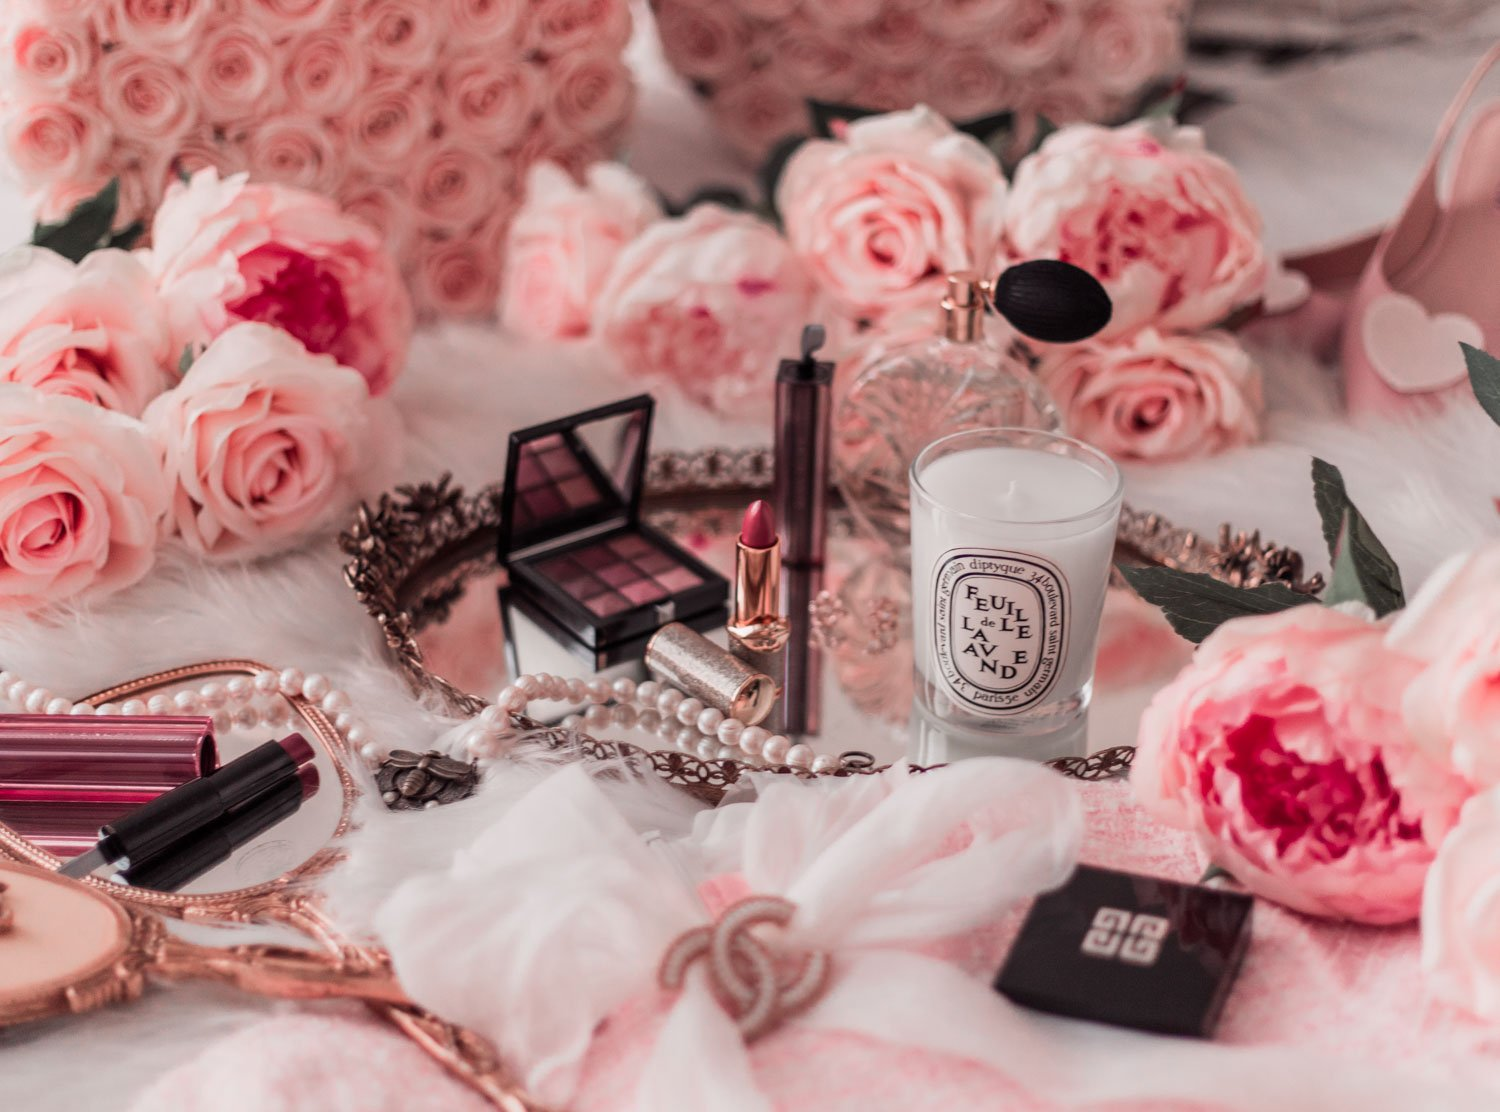 Elizabeth Hugen of Lizzie in Lace shares for October 2019 beauty faves including a Diptyque, Givenchy beauty and Pat McGrath!